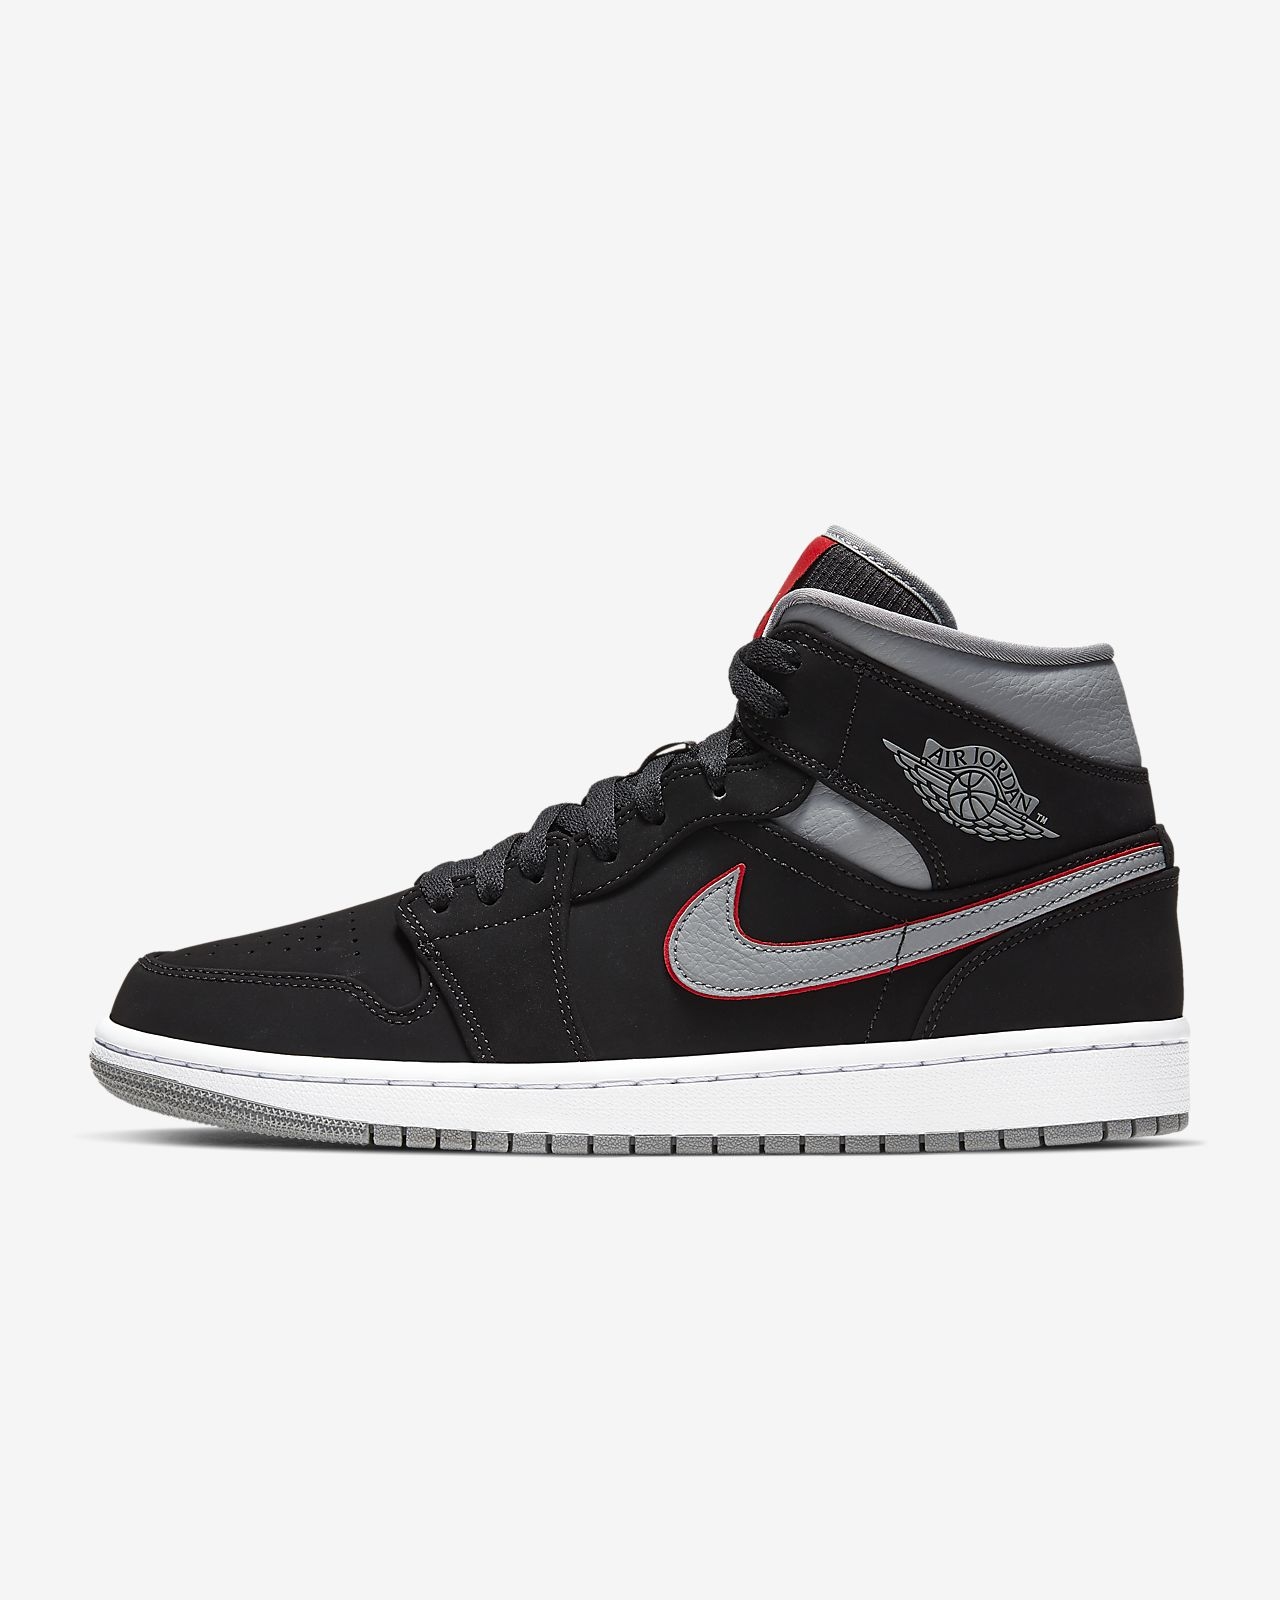 on sale ec77f 08b2d Men s Shoe. Air Jordan 1 Mid